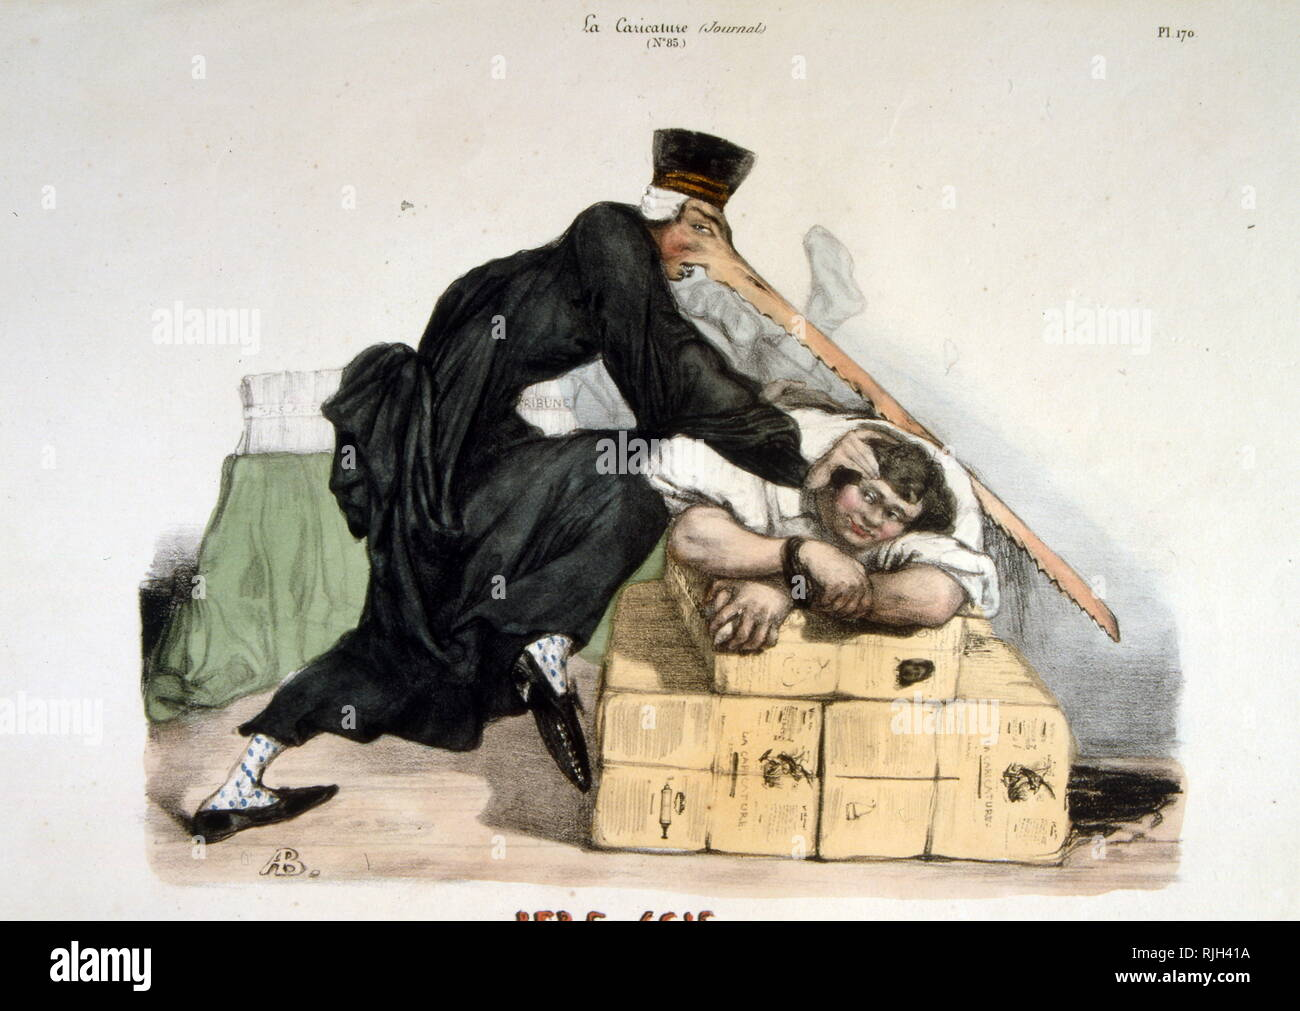 Caricature of the French state executing rebels in 1832. The June Rebellion or the Paris Uprising of 1832, was an anti-monarchist insurrection of Parisian republicans on 5 and 6 June 1832 - Stock Image